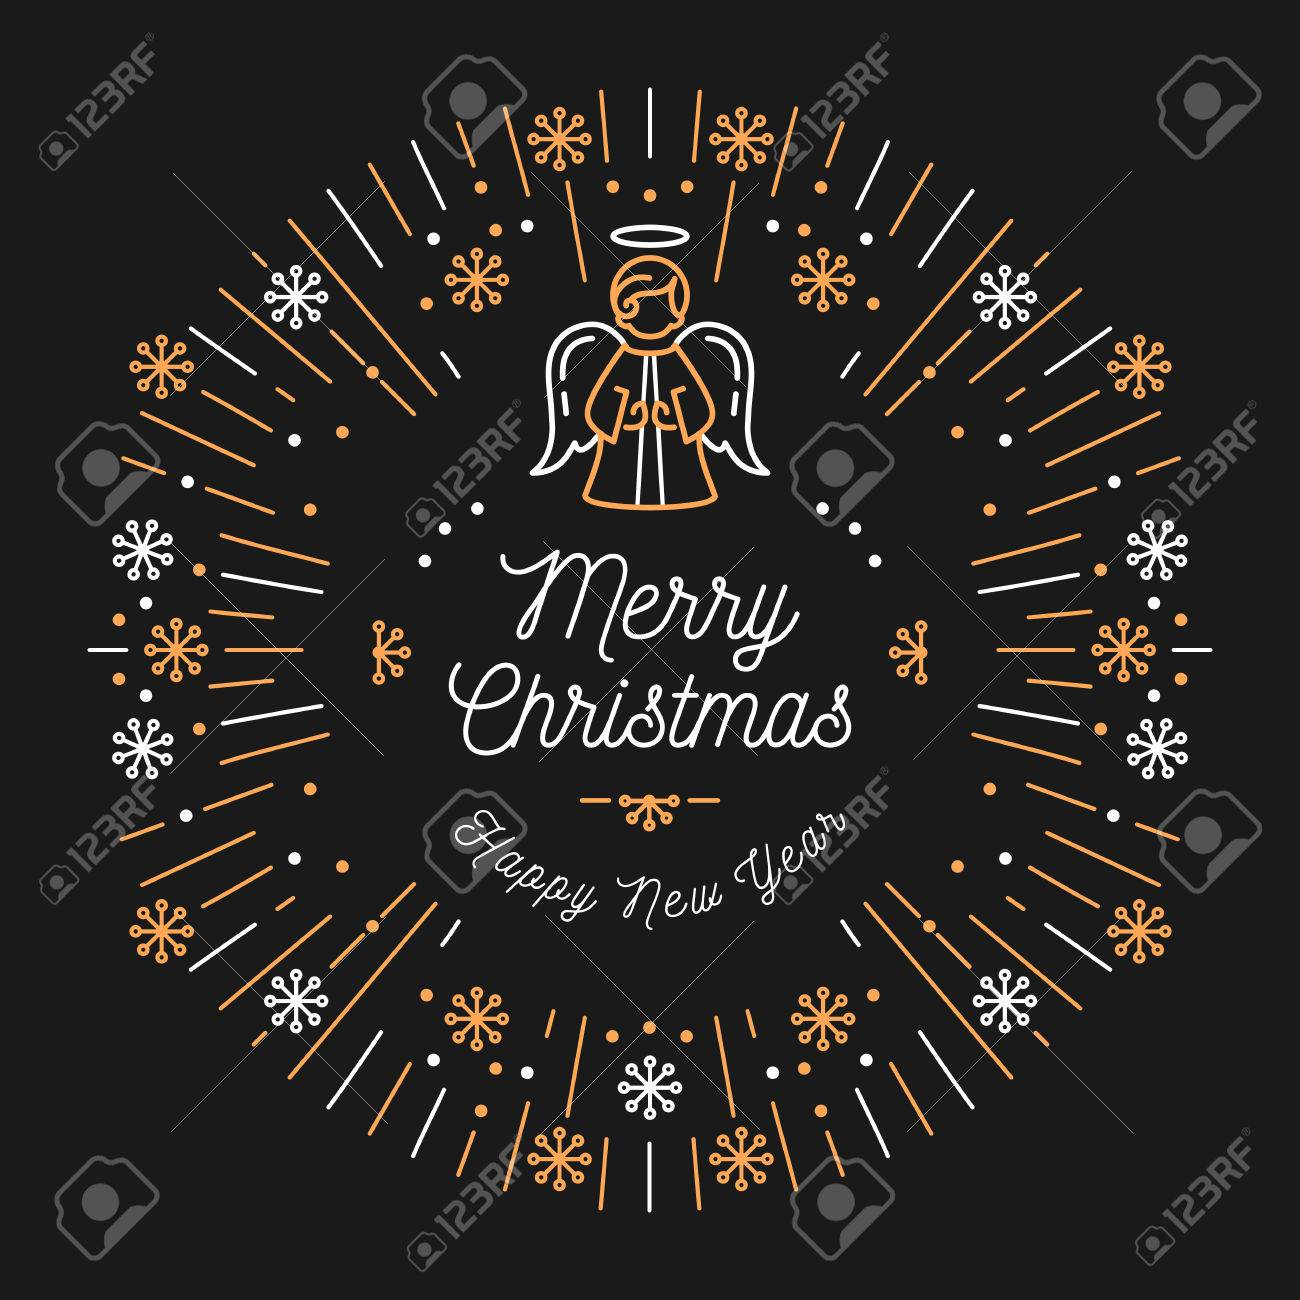 Merry Christmas Religious.Trendy Card Merry Christmas And Happy New Year Minimal Design